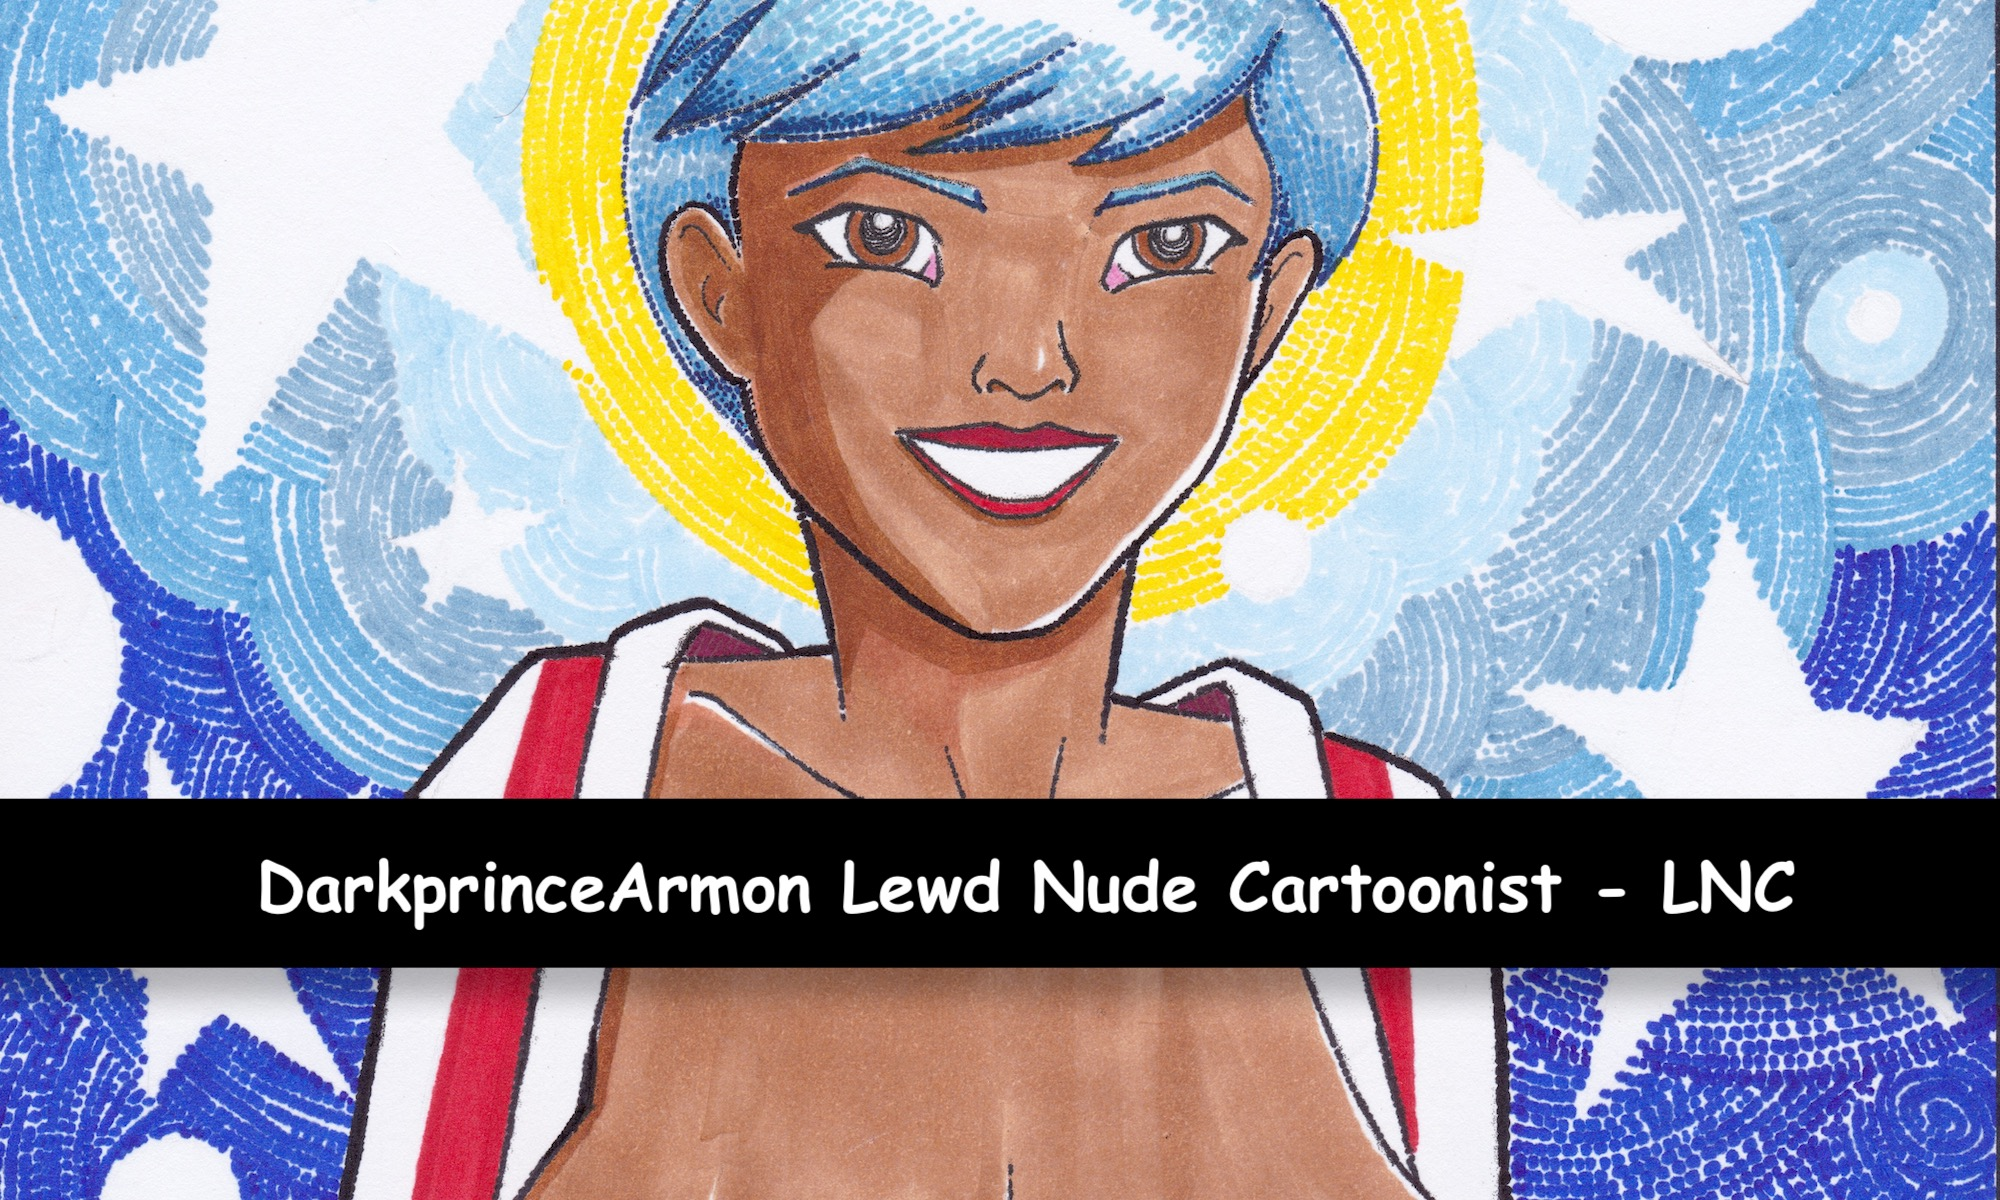 Lewd Nude Cartoonist